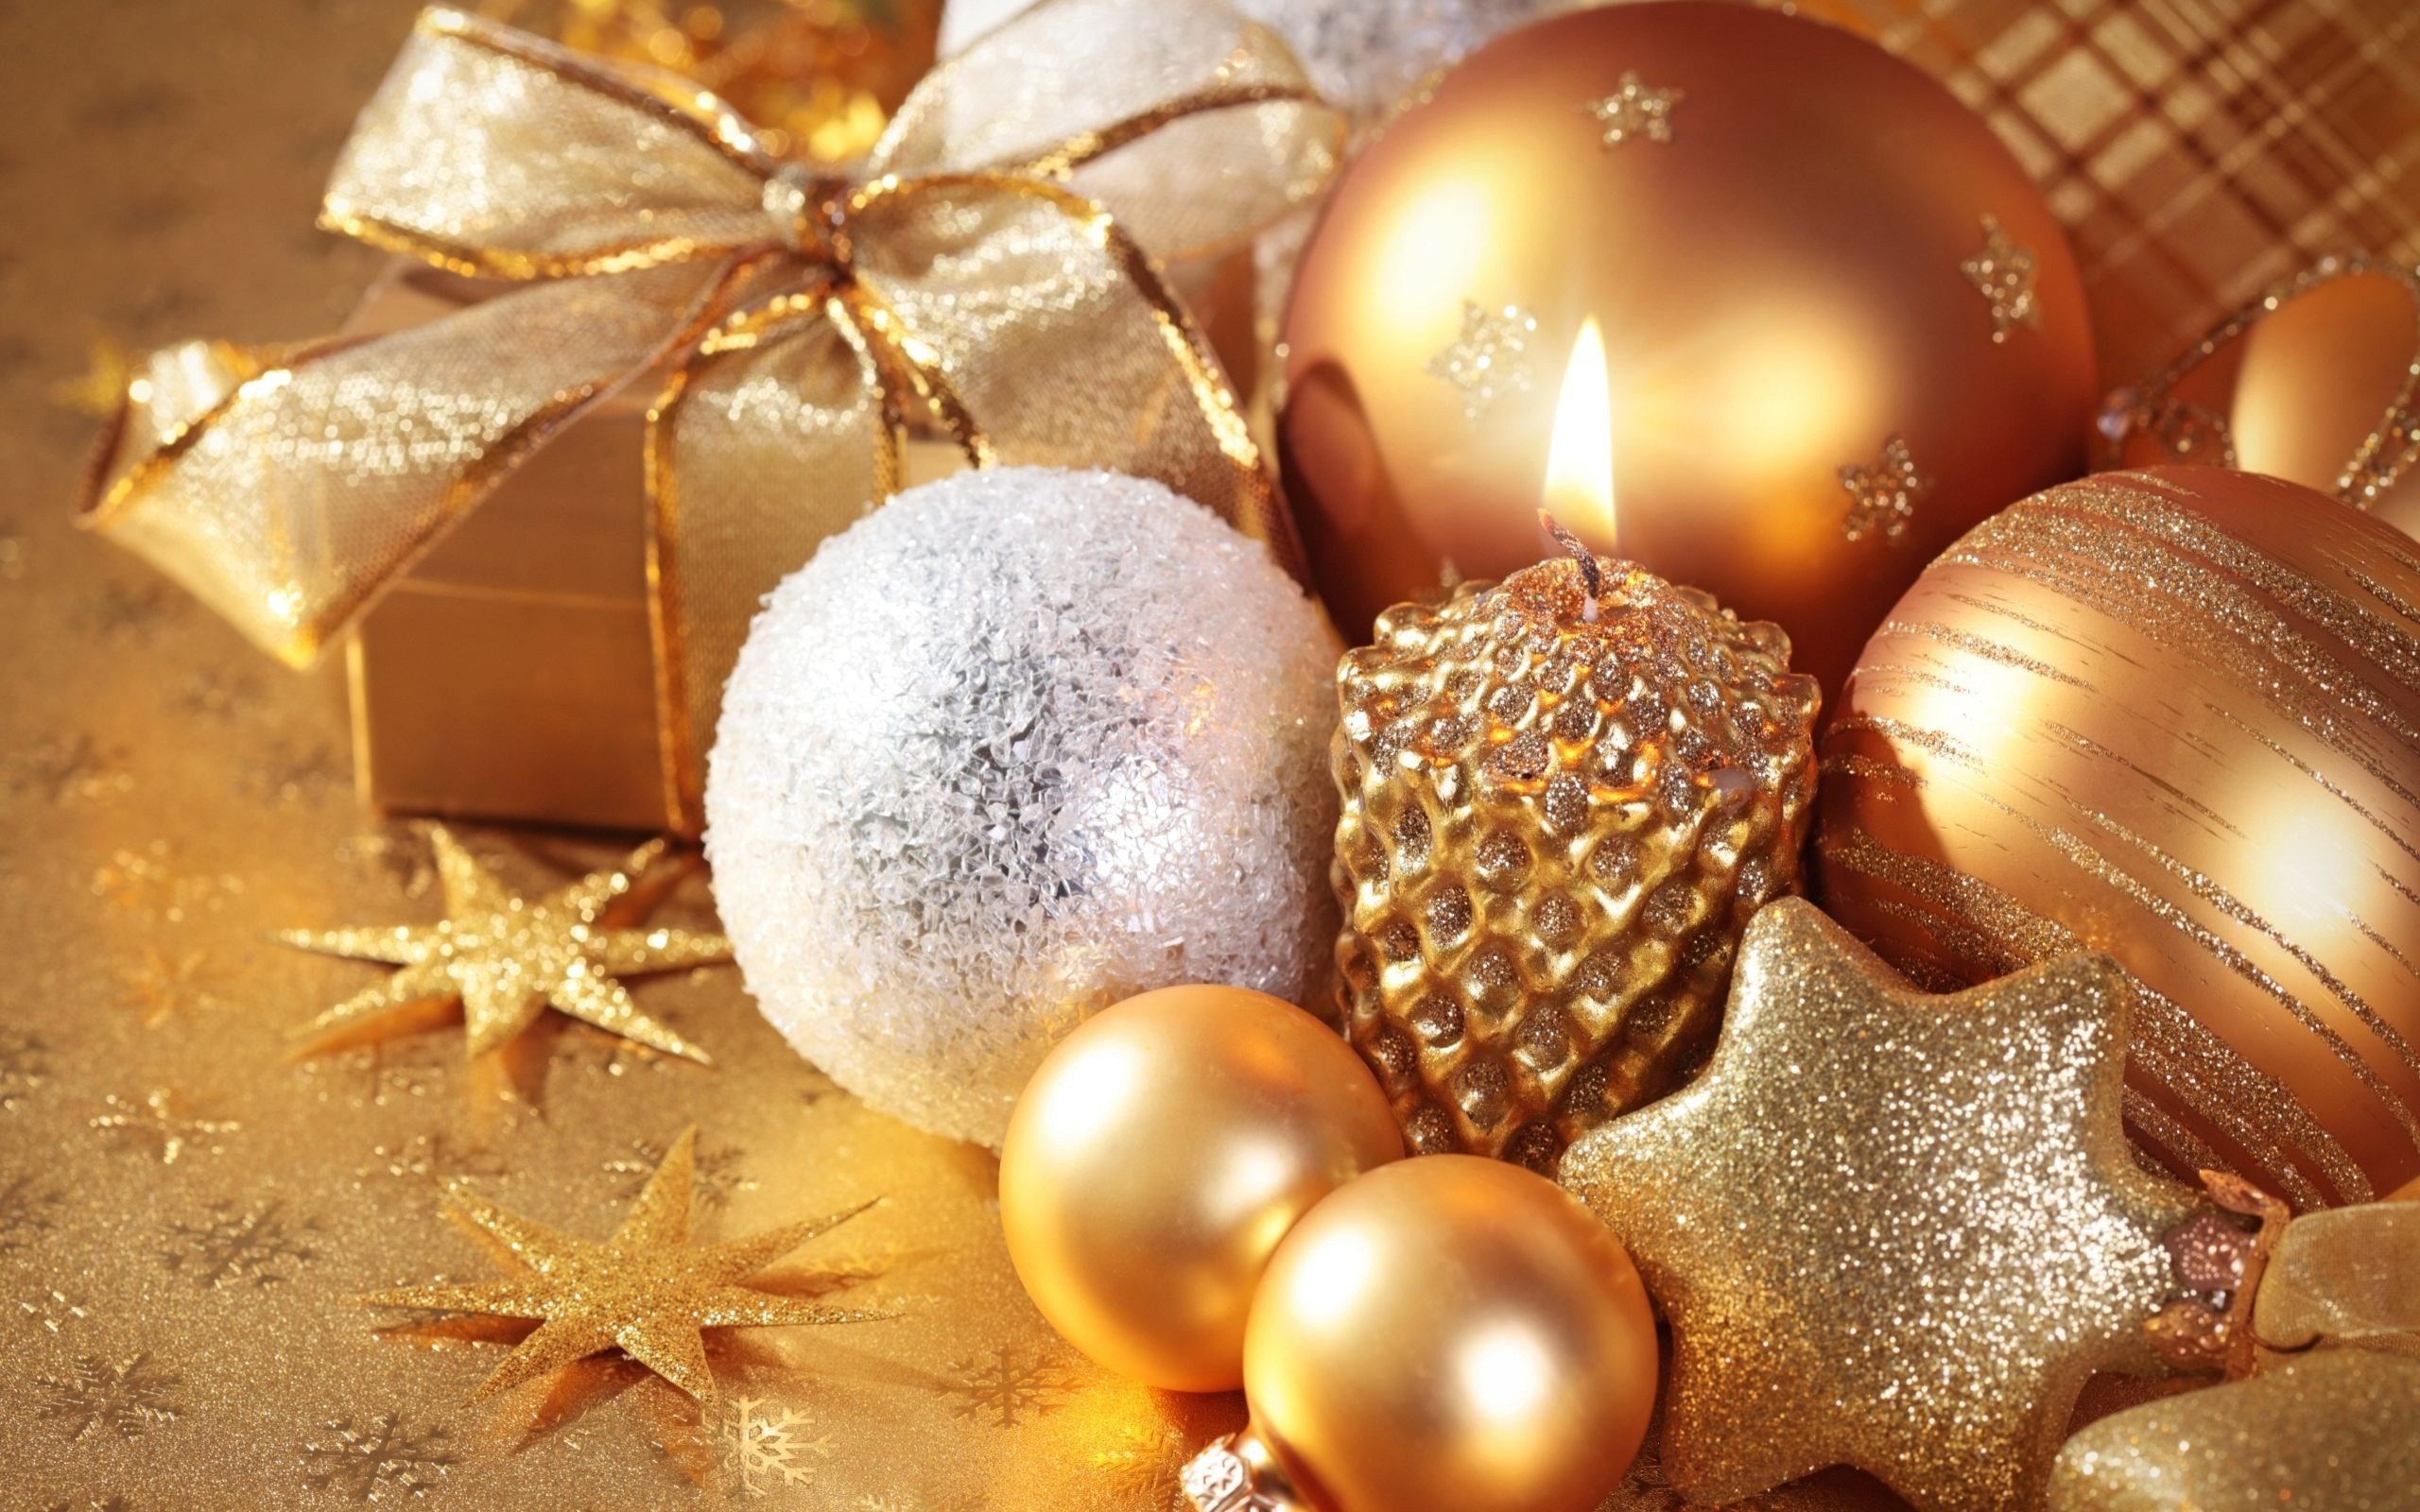 2560x1600 beautiful christmas ornaments wallpaper 8571 download download - Beautiful Christmas Ornaments